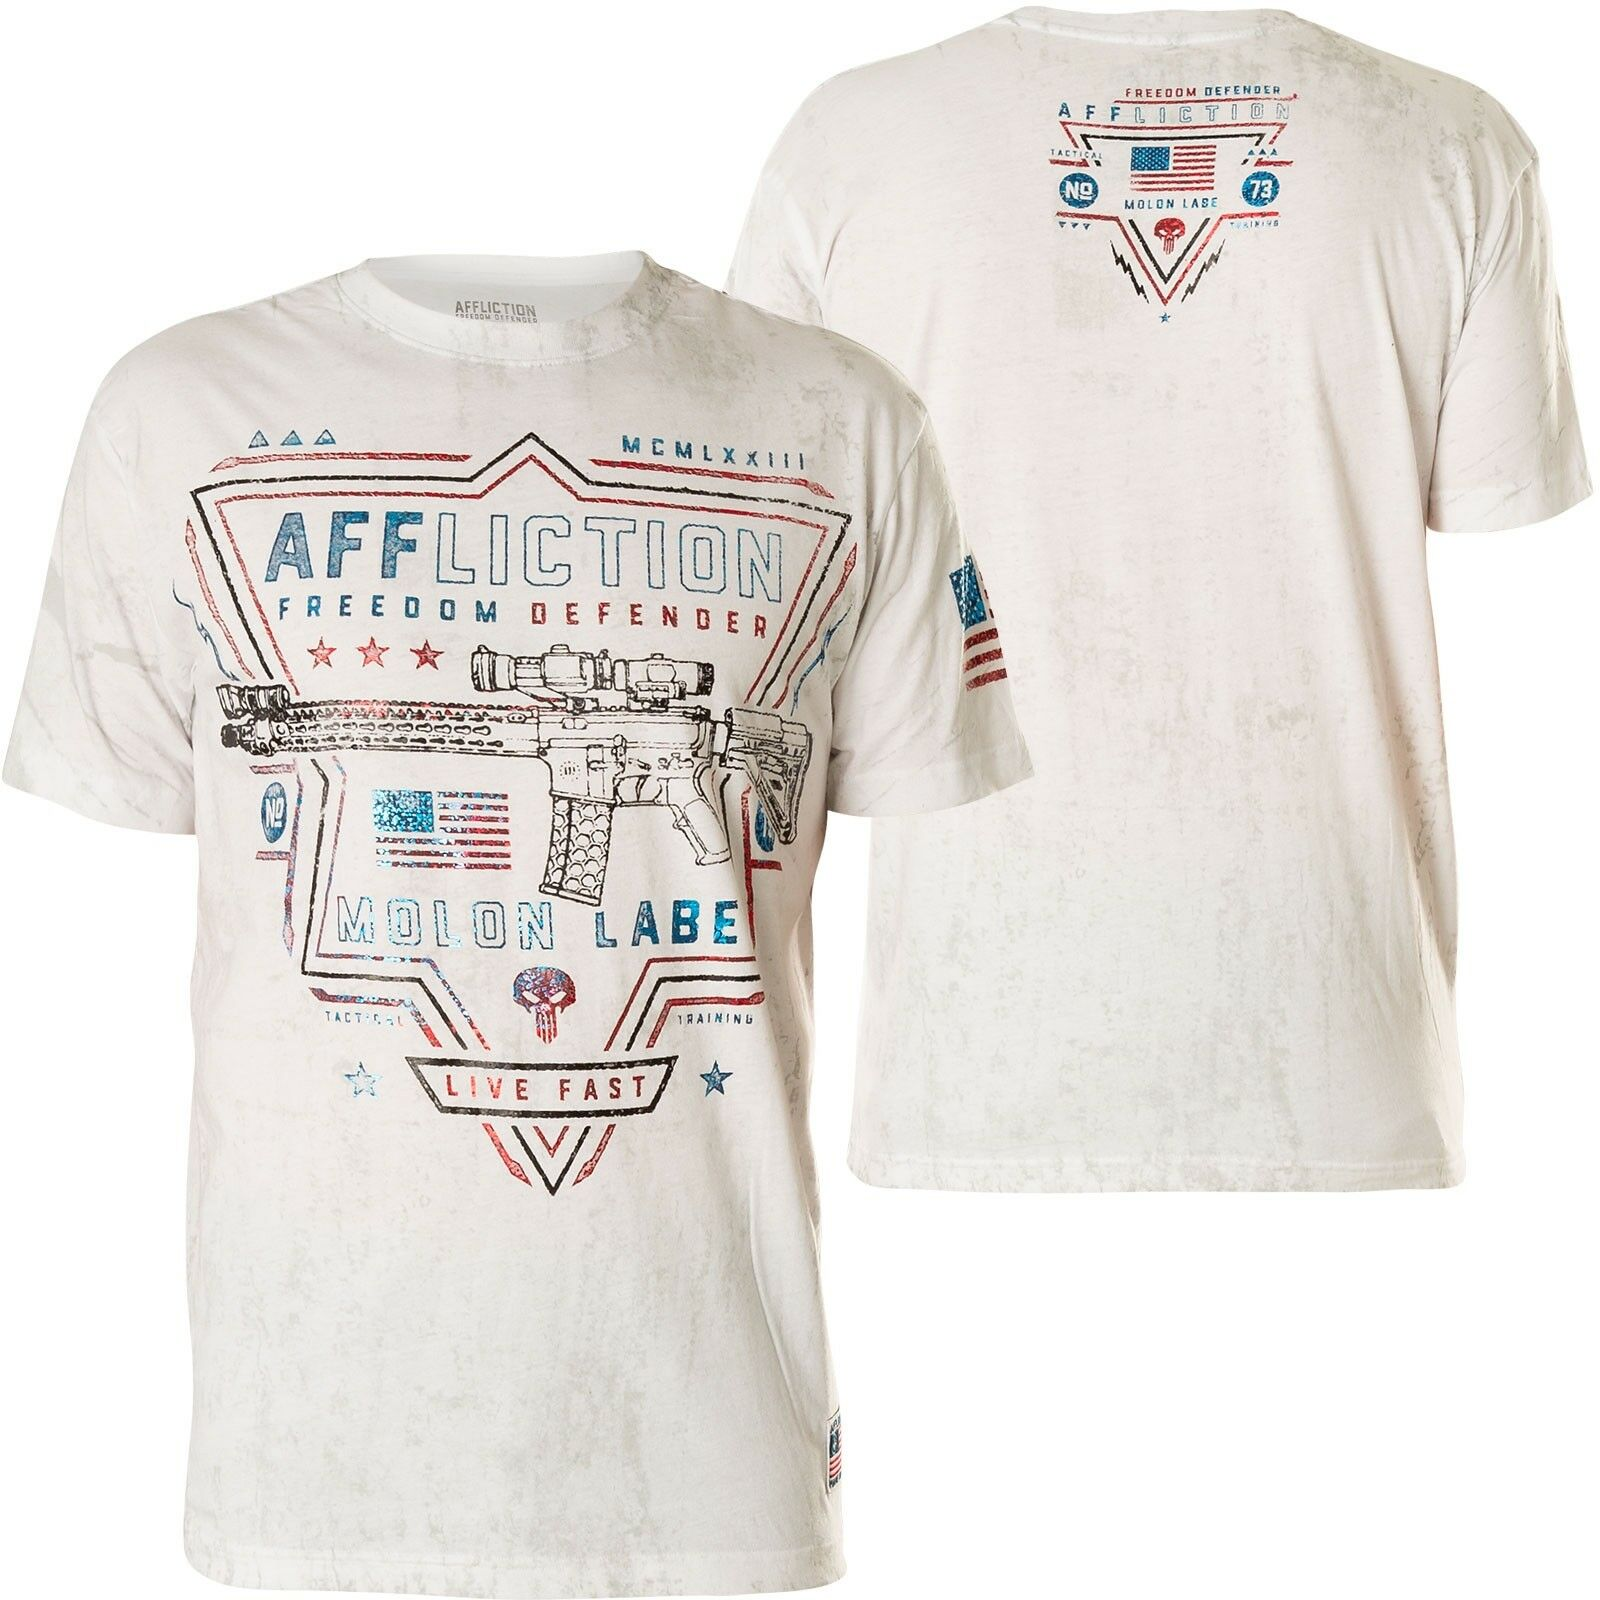 AFFLICTION T-Shirt Tactical Standard white T-Shirts